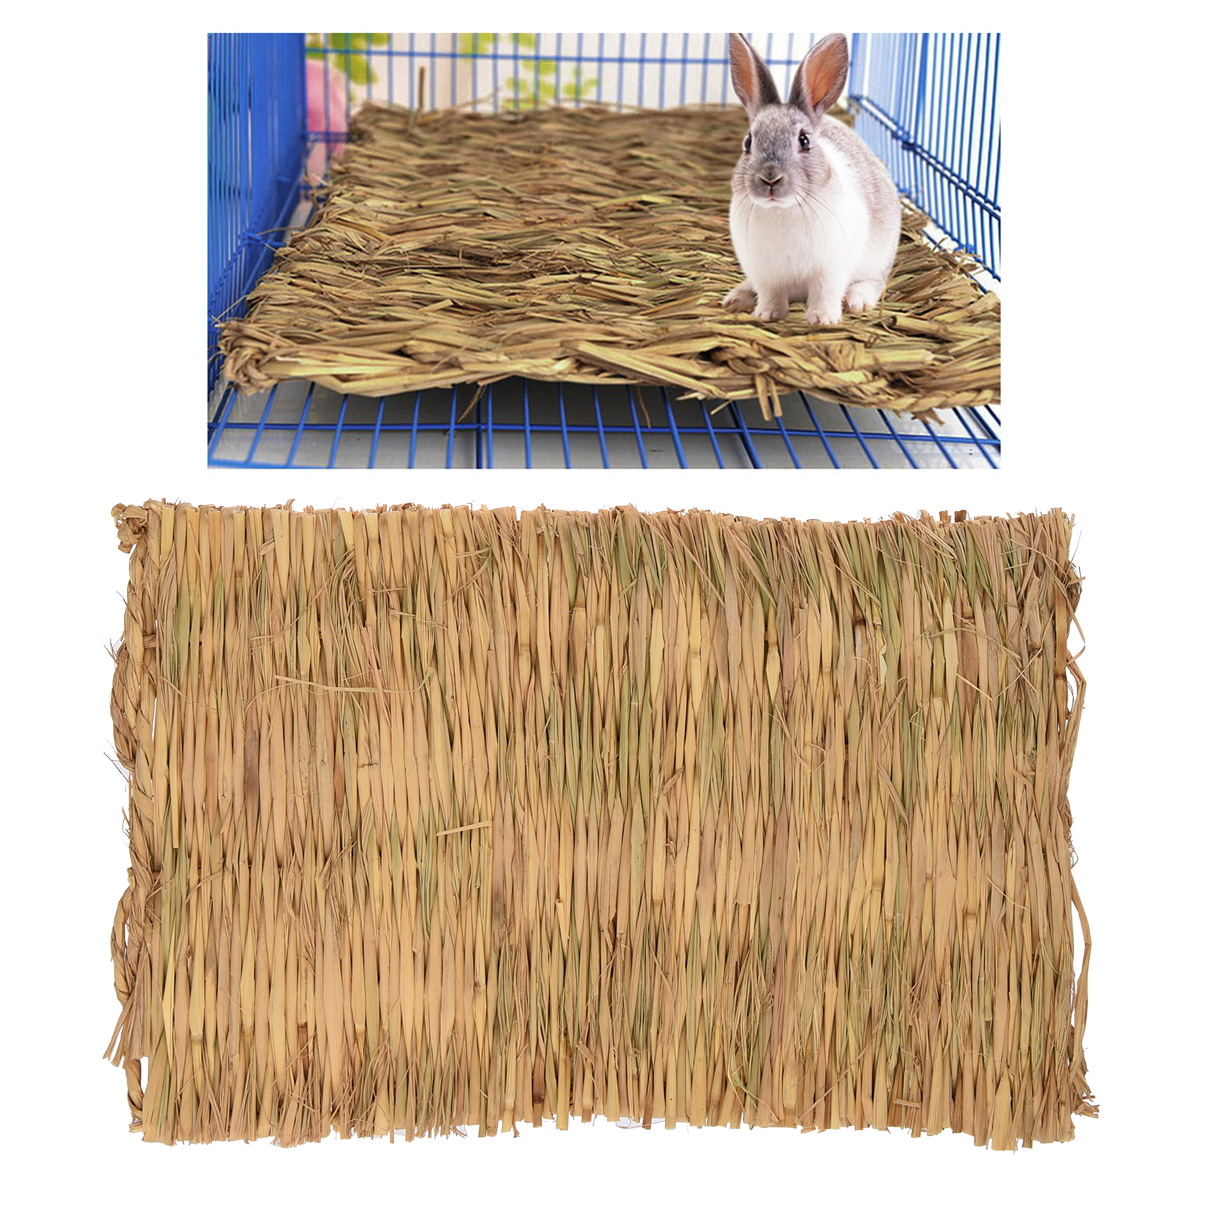 Mat for rabbits and small animals!